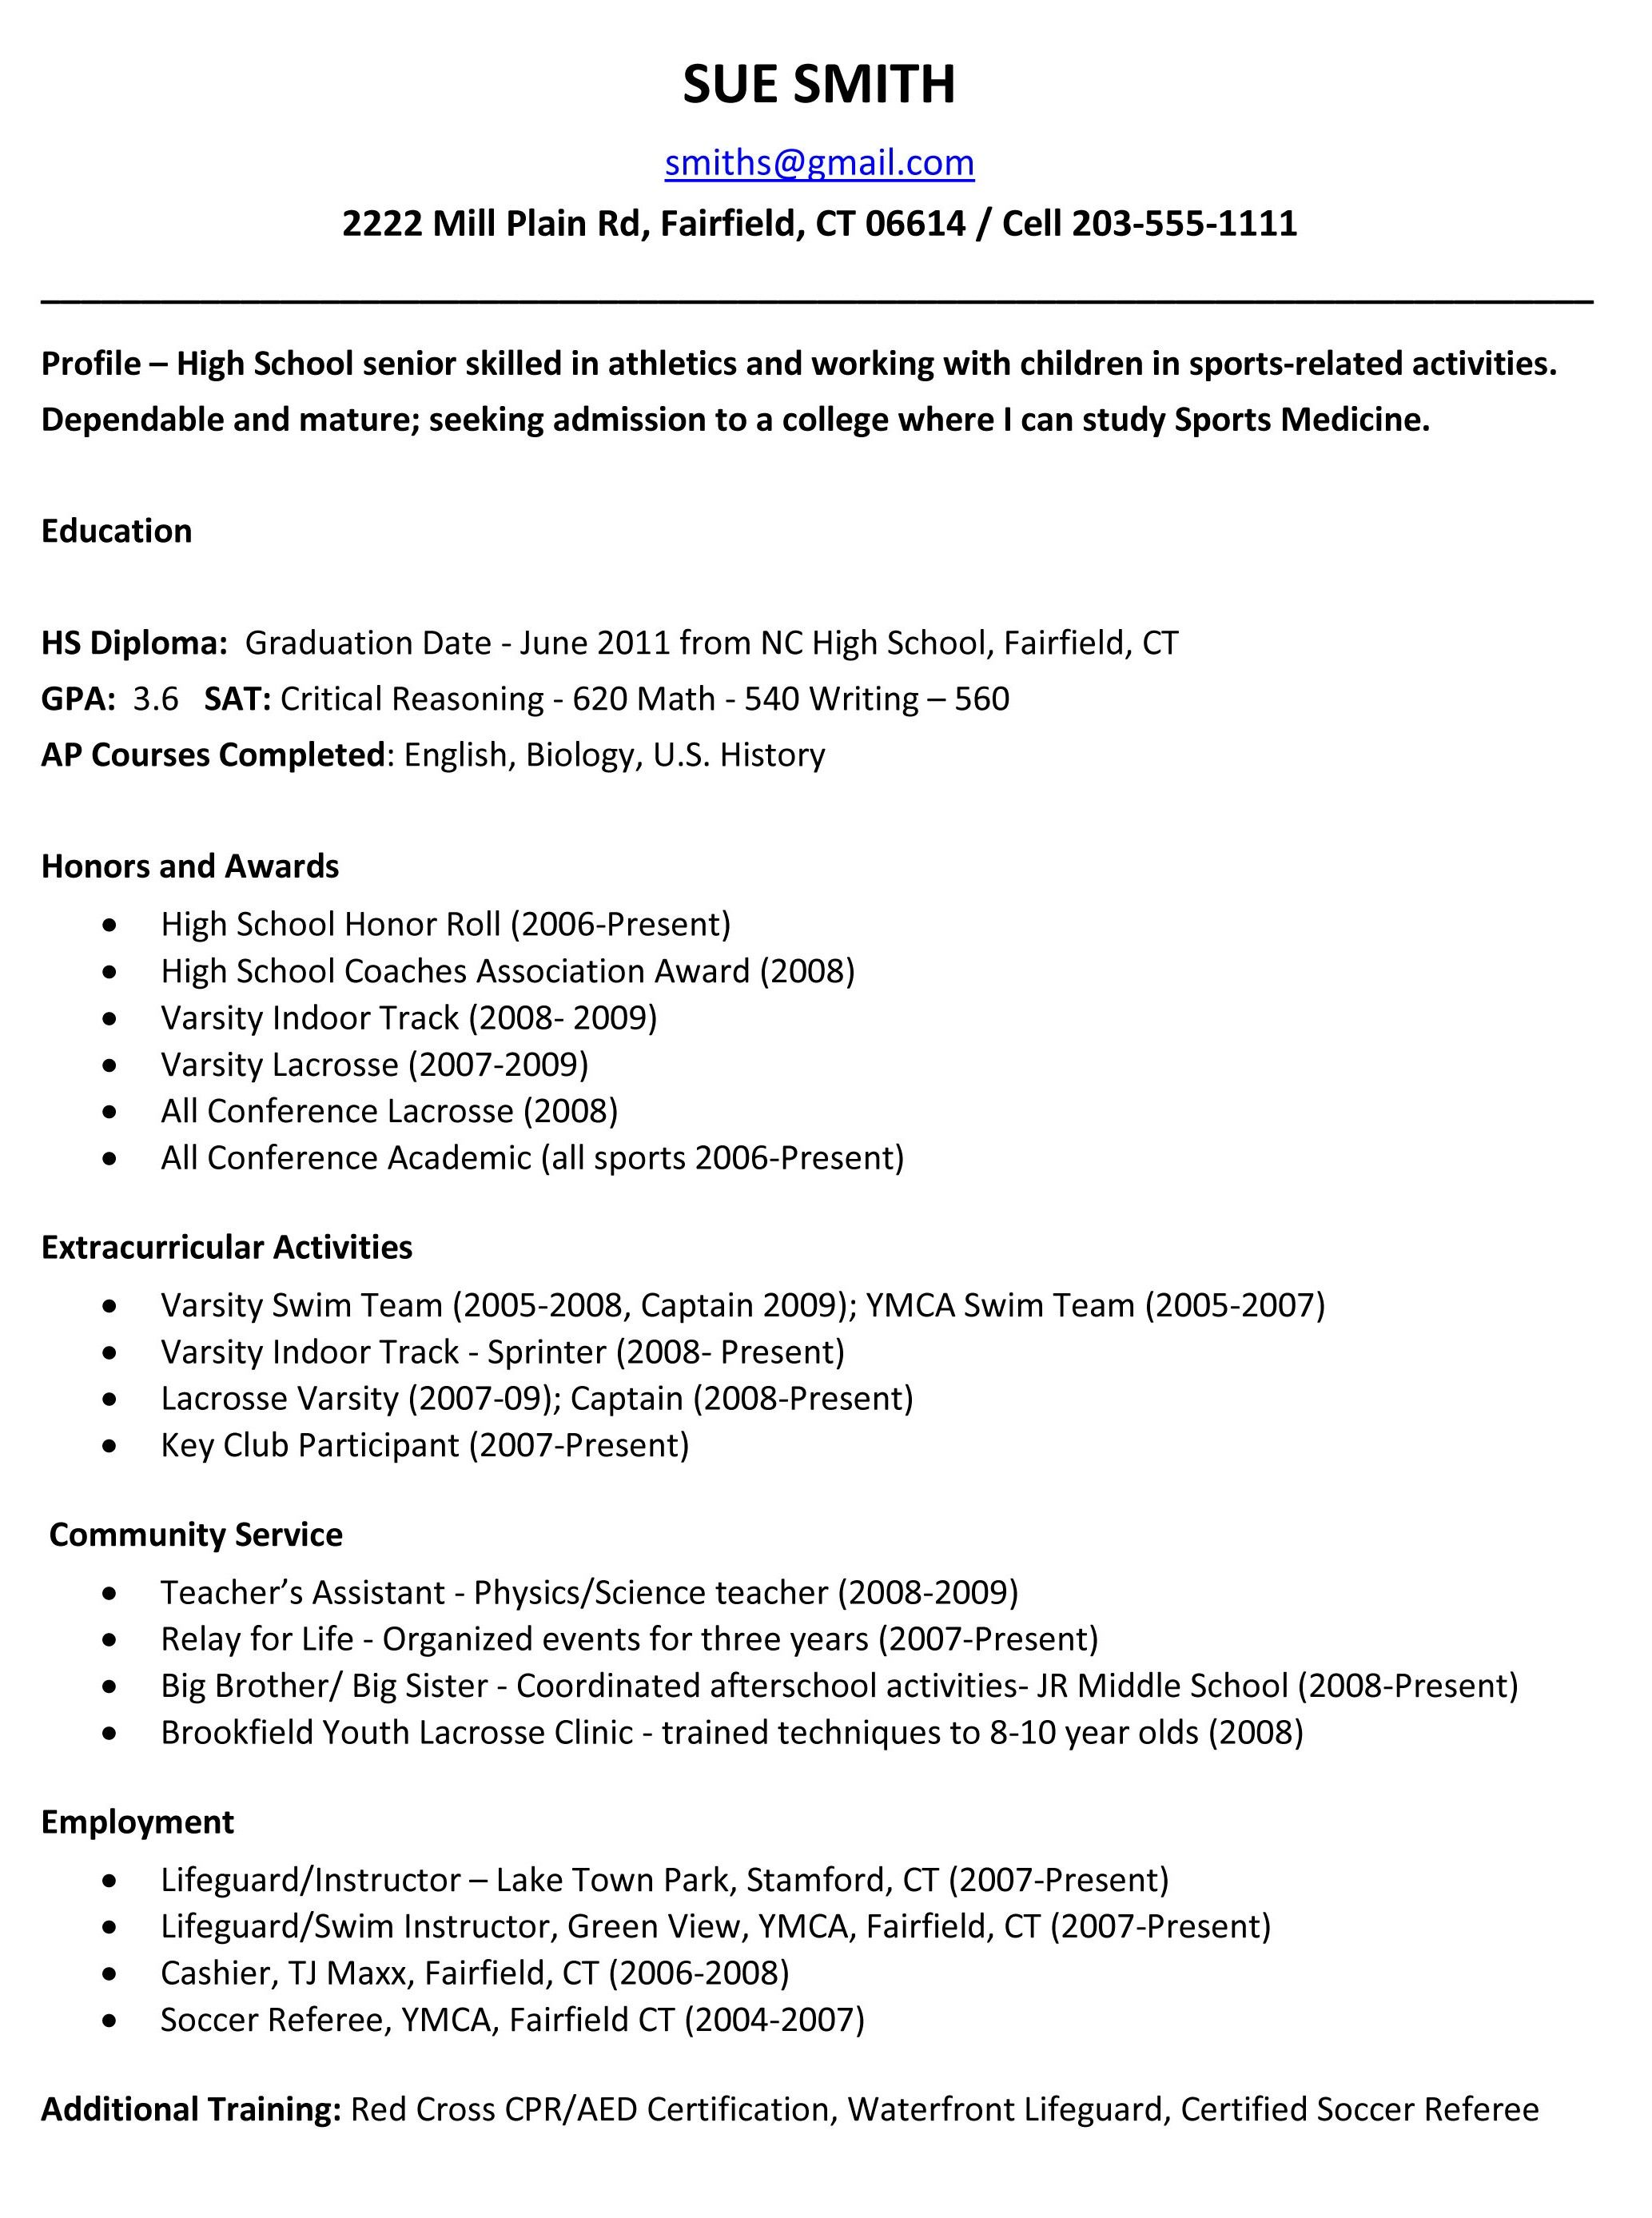 example resume for high school students for college applications school resume